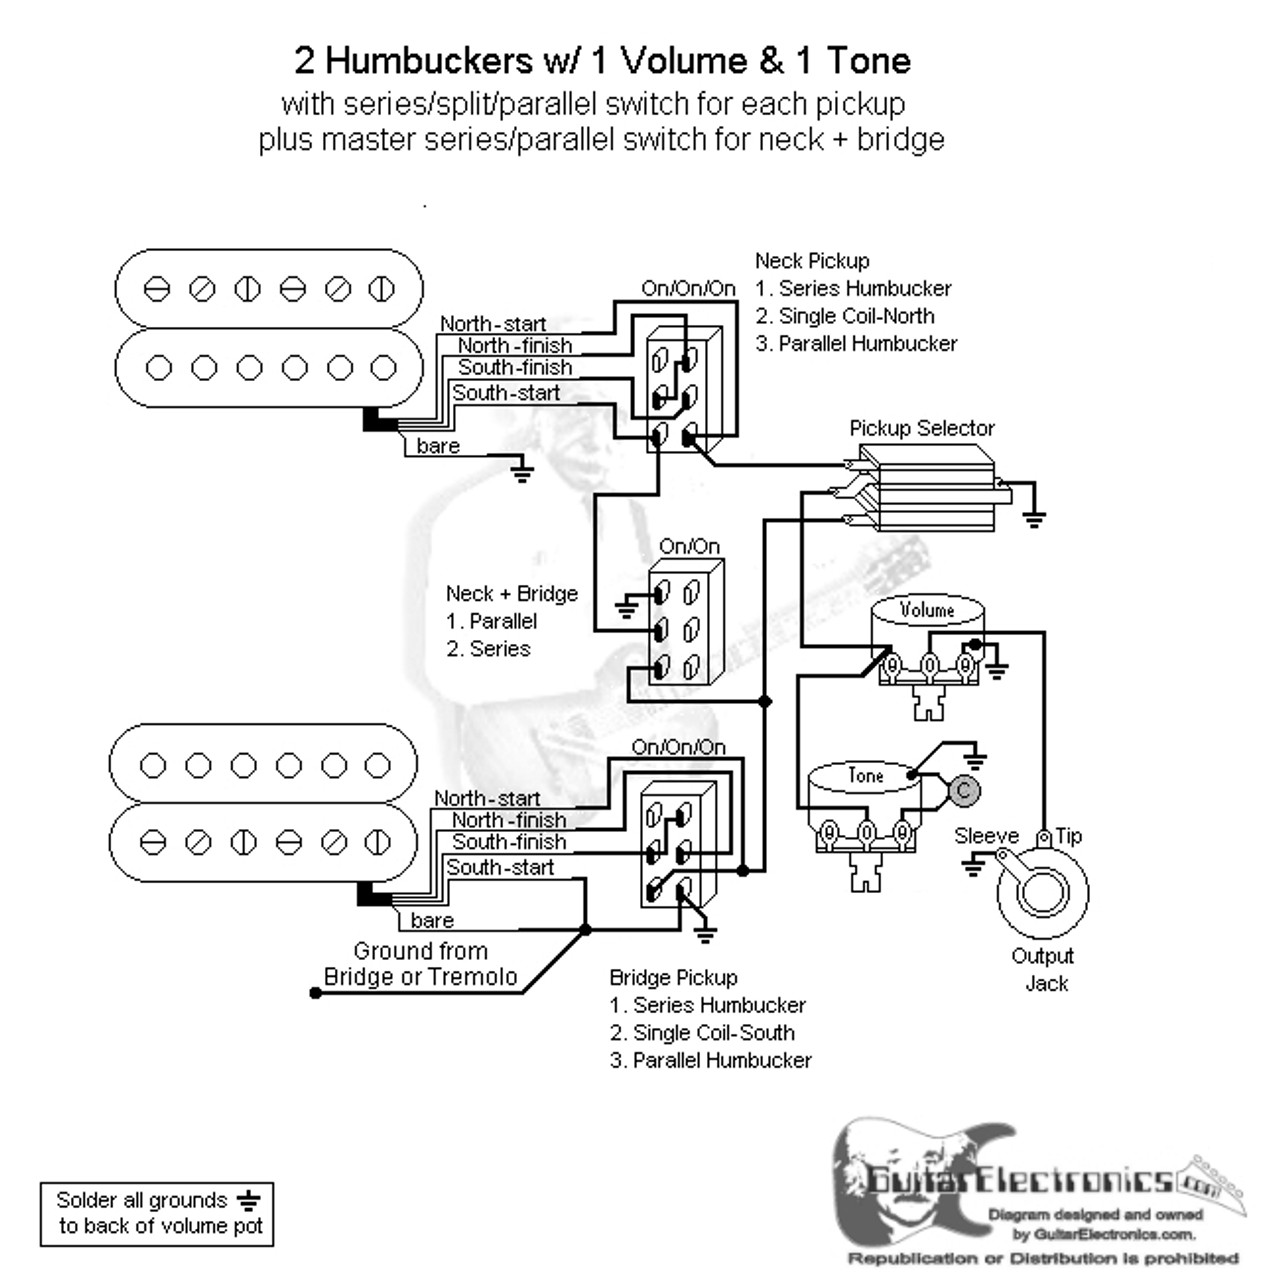 hight resolution of 2 hbs 3 way toggle 1 vol 1 tone series split parallel u0026 master ethernet switch wiring diagram 2 hbs 3 way toggle 1 vol 1 tone series split parallel